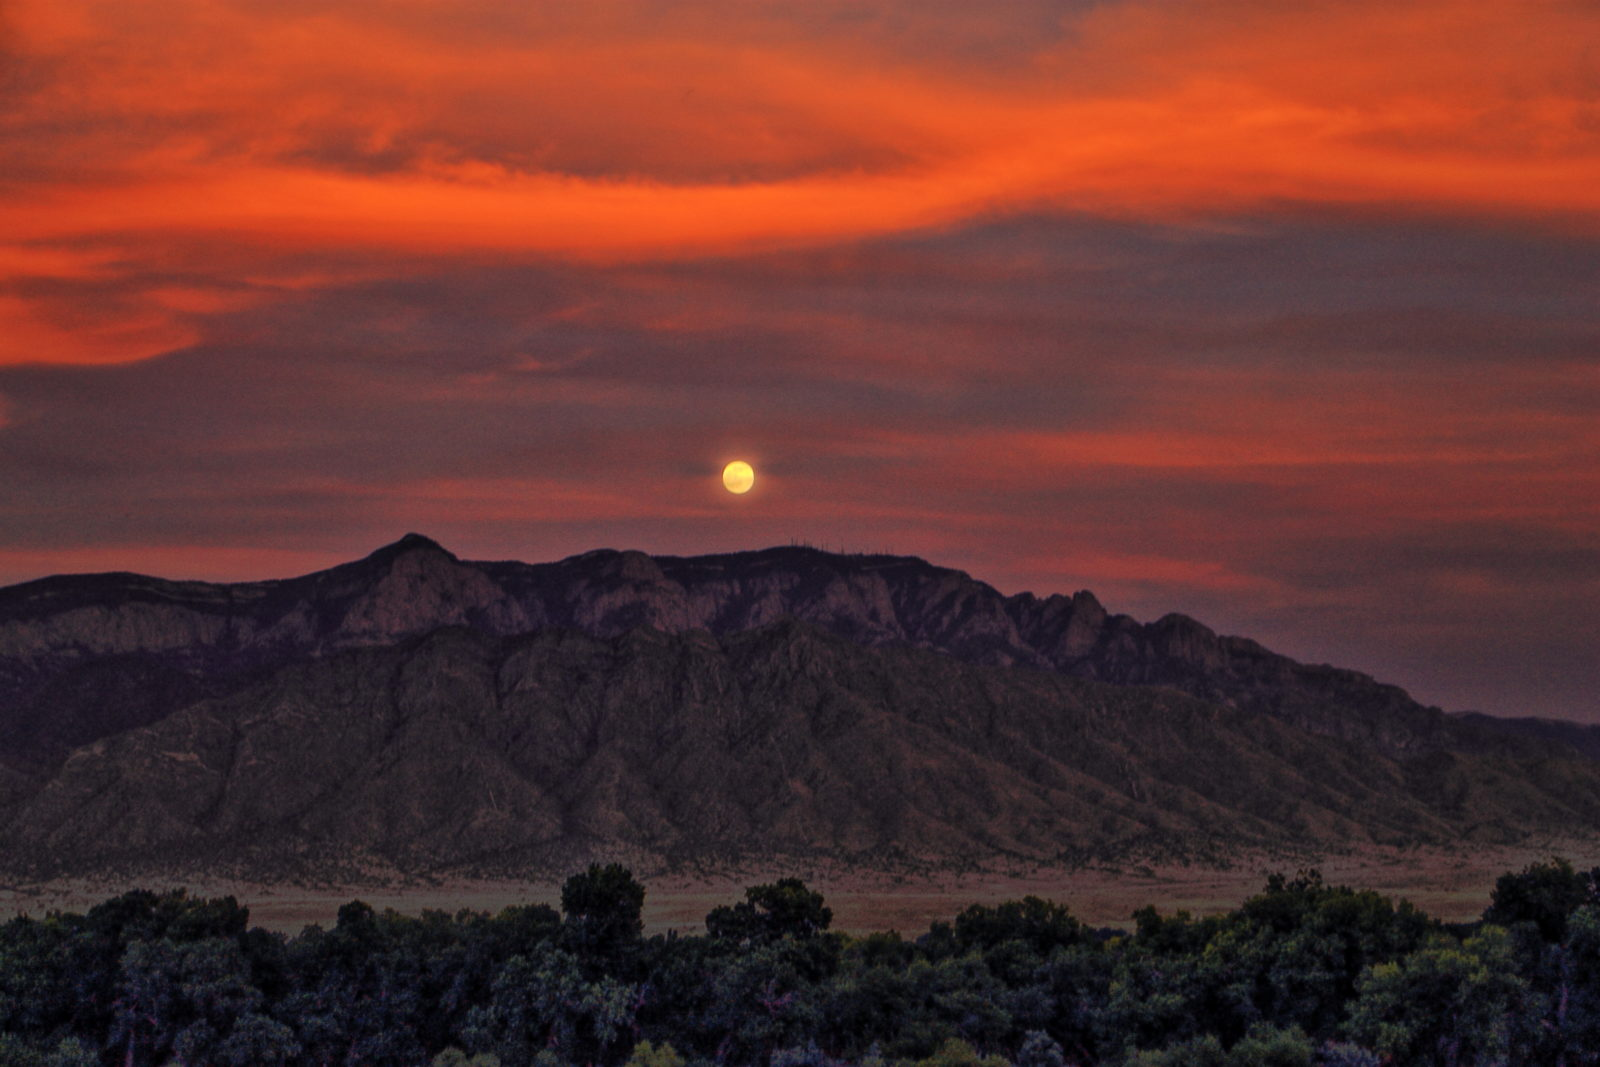 Moon Rise Over the Sandia Mountains